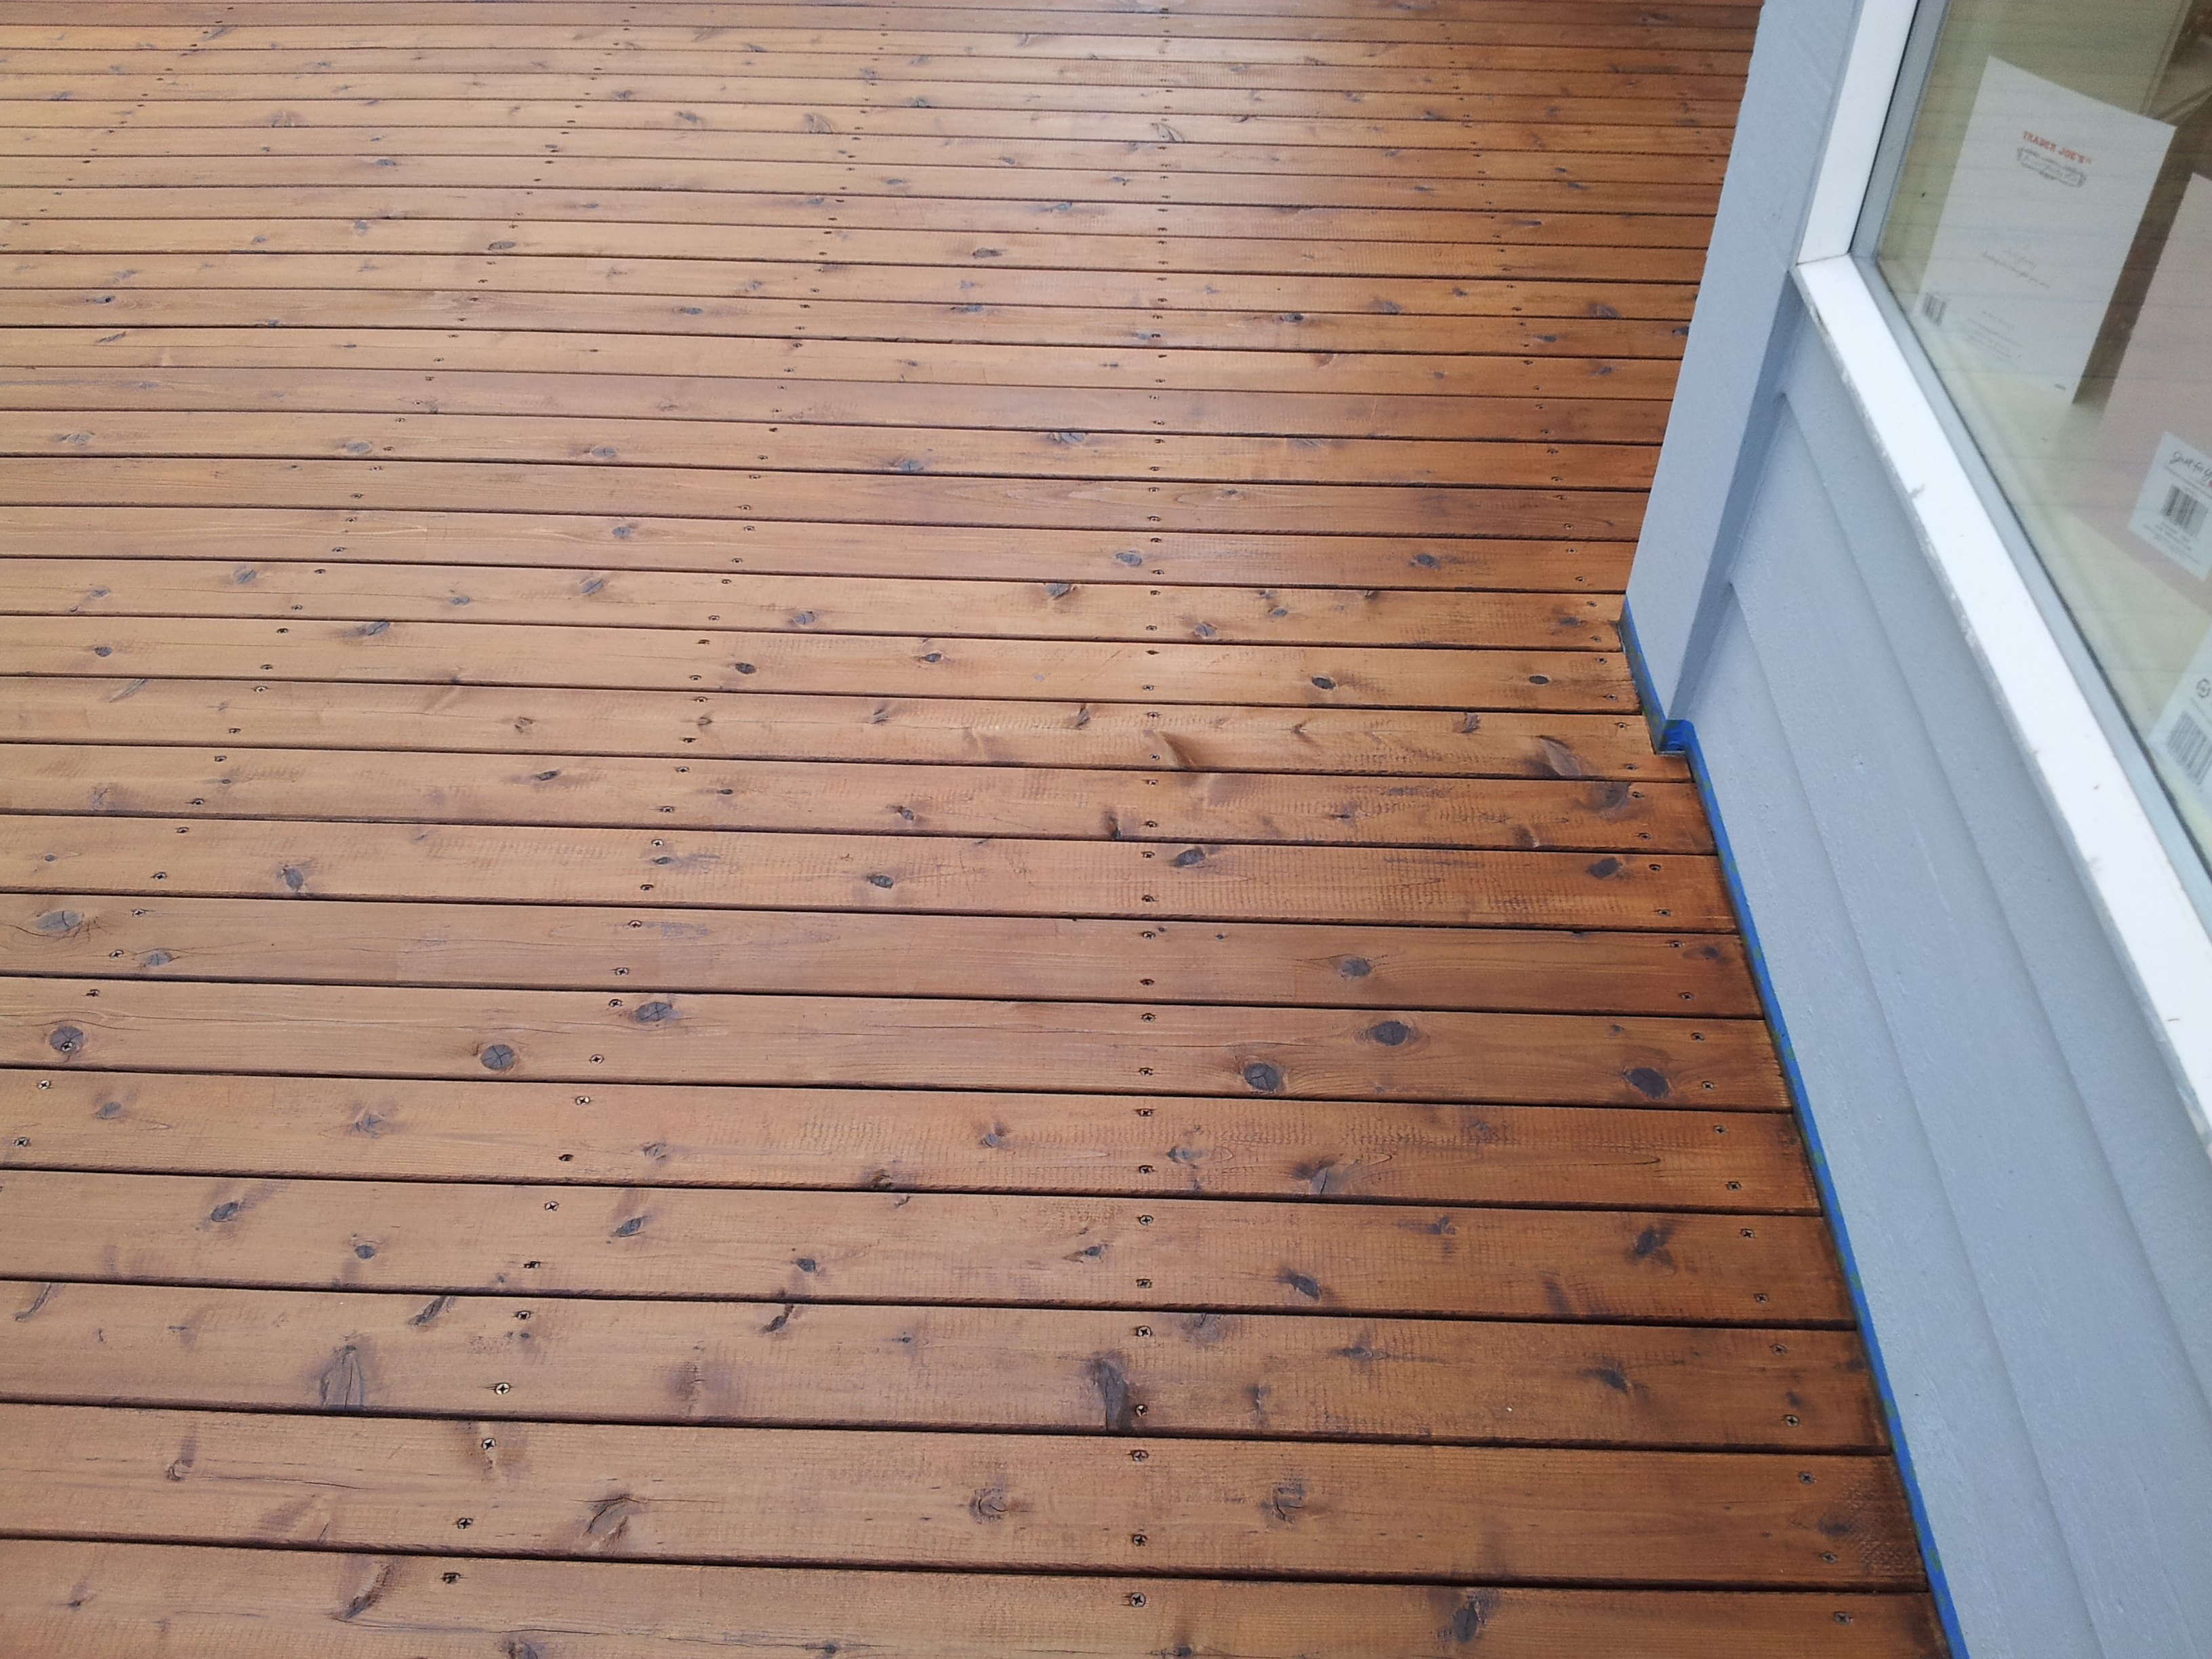 Oil Based Deck Stains 2018 Best Deck Stain Reviews Ratings with regard to dimensions 3264 X 2448